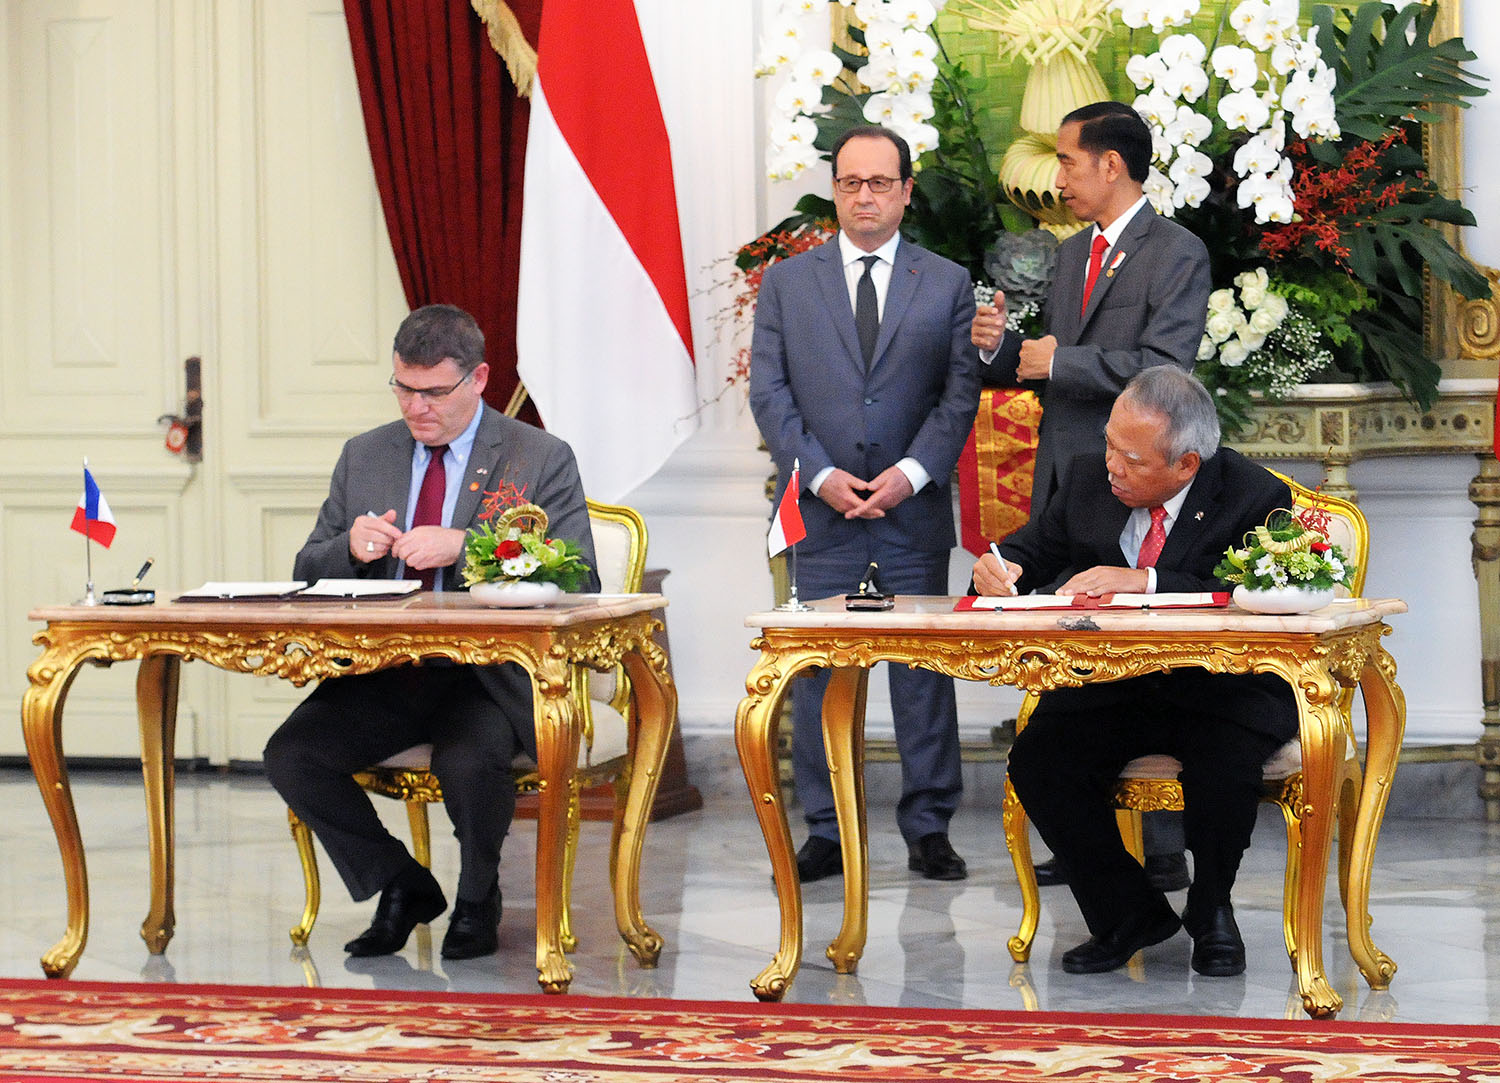 President Jokowi and President of France François Hollande witness the signing of MoUs, at the Merdeka Palace, Jakarta, Wednesday (29/3) afternoon (Photo: Agung/PR)